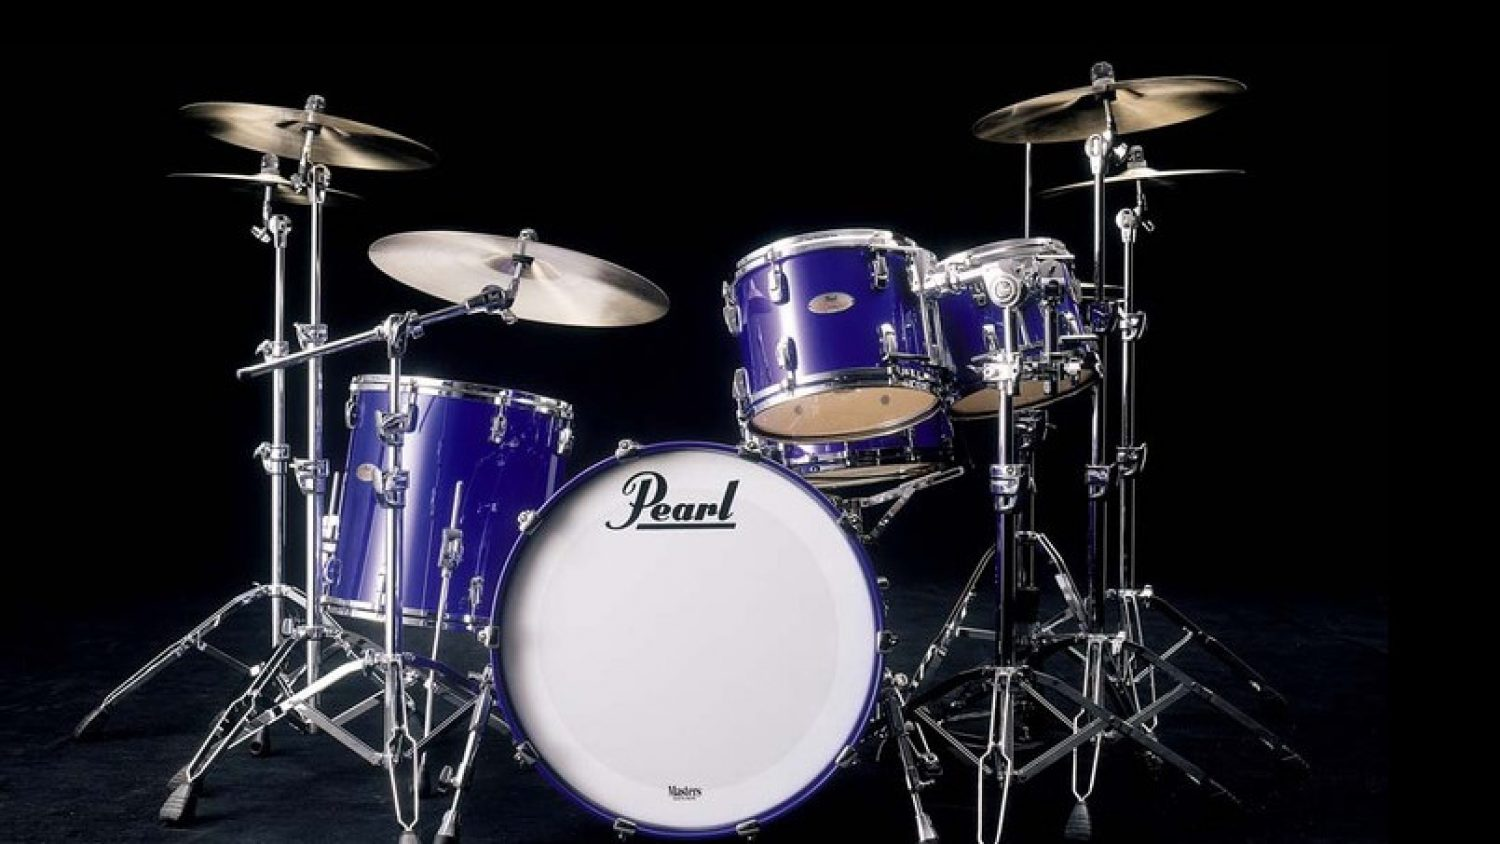 Here's everything that affects the sound of your drums